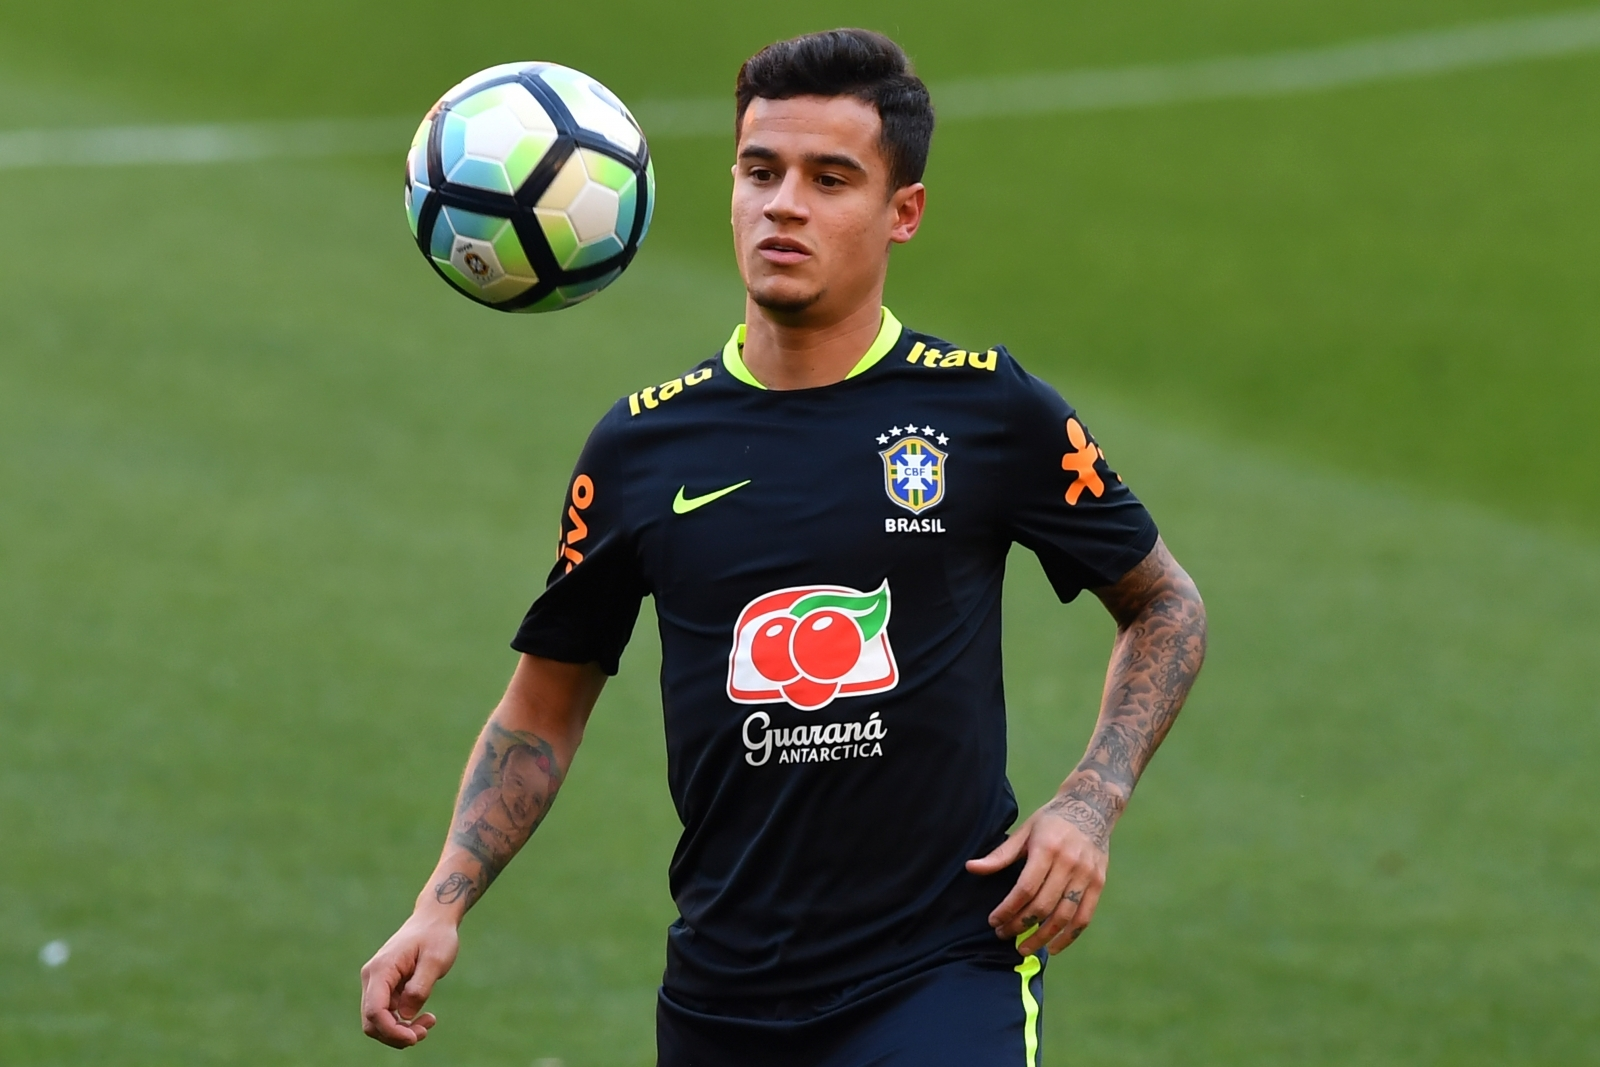 Liverpool legend: Coutinho should have showed some respect